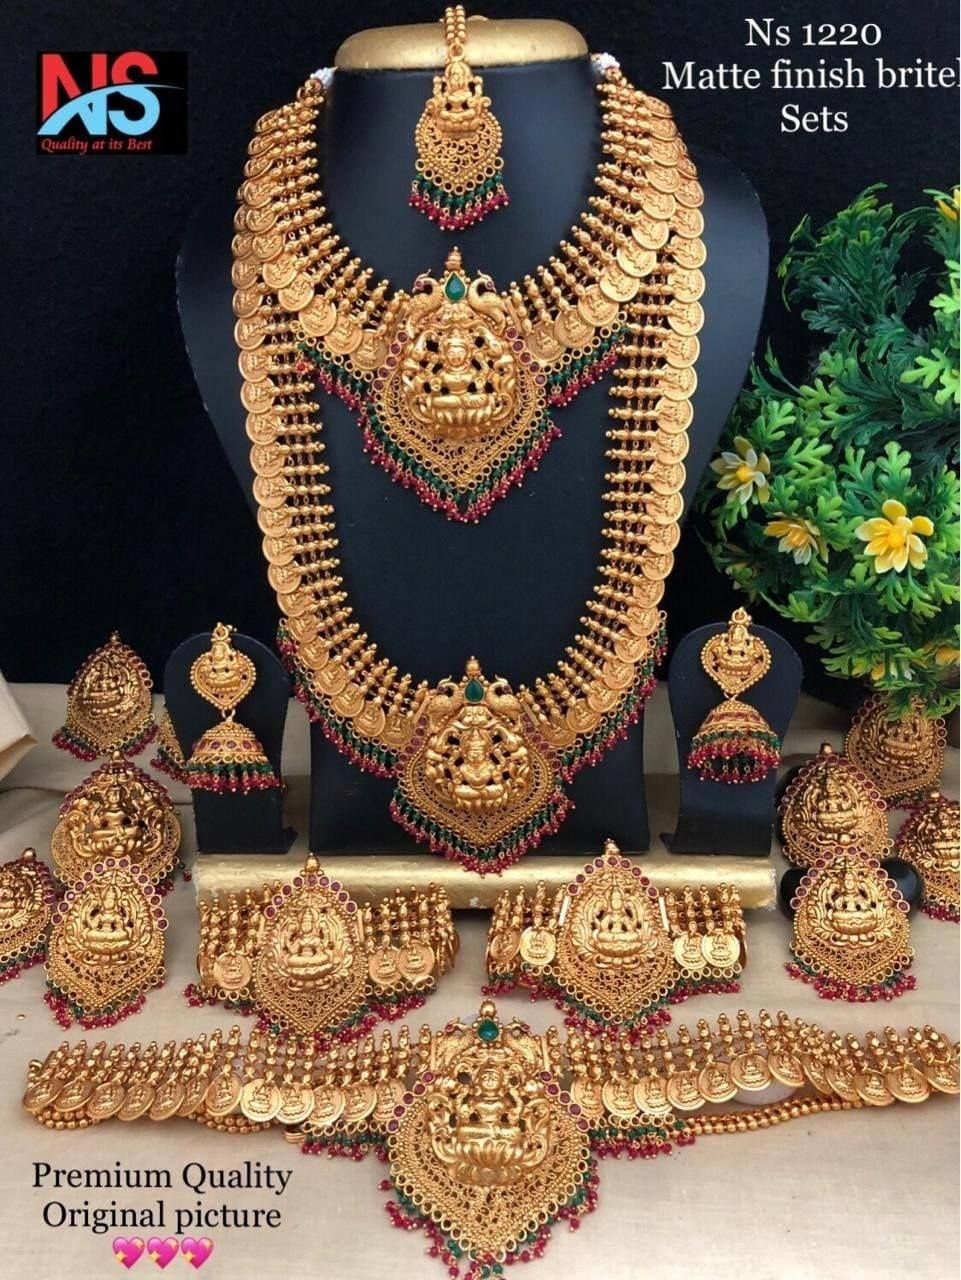 Rent Jewelleries In 2020 Indian Bridal Jewelry Sets Bridal Jewelry Sets Brides Bride Jewelry Set